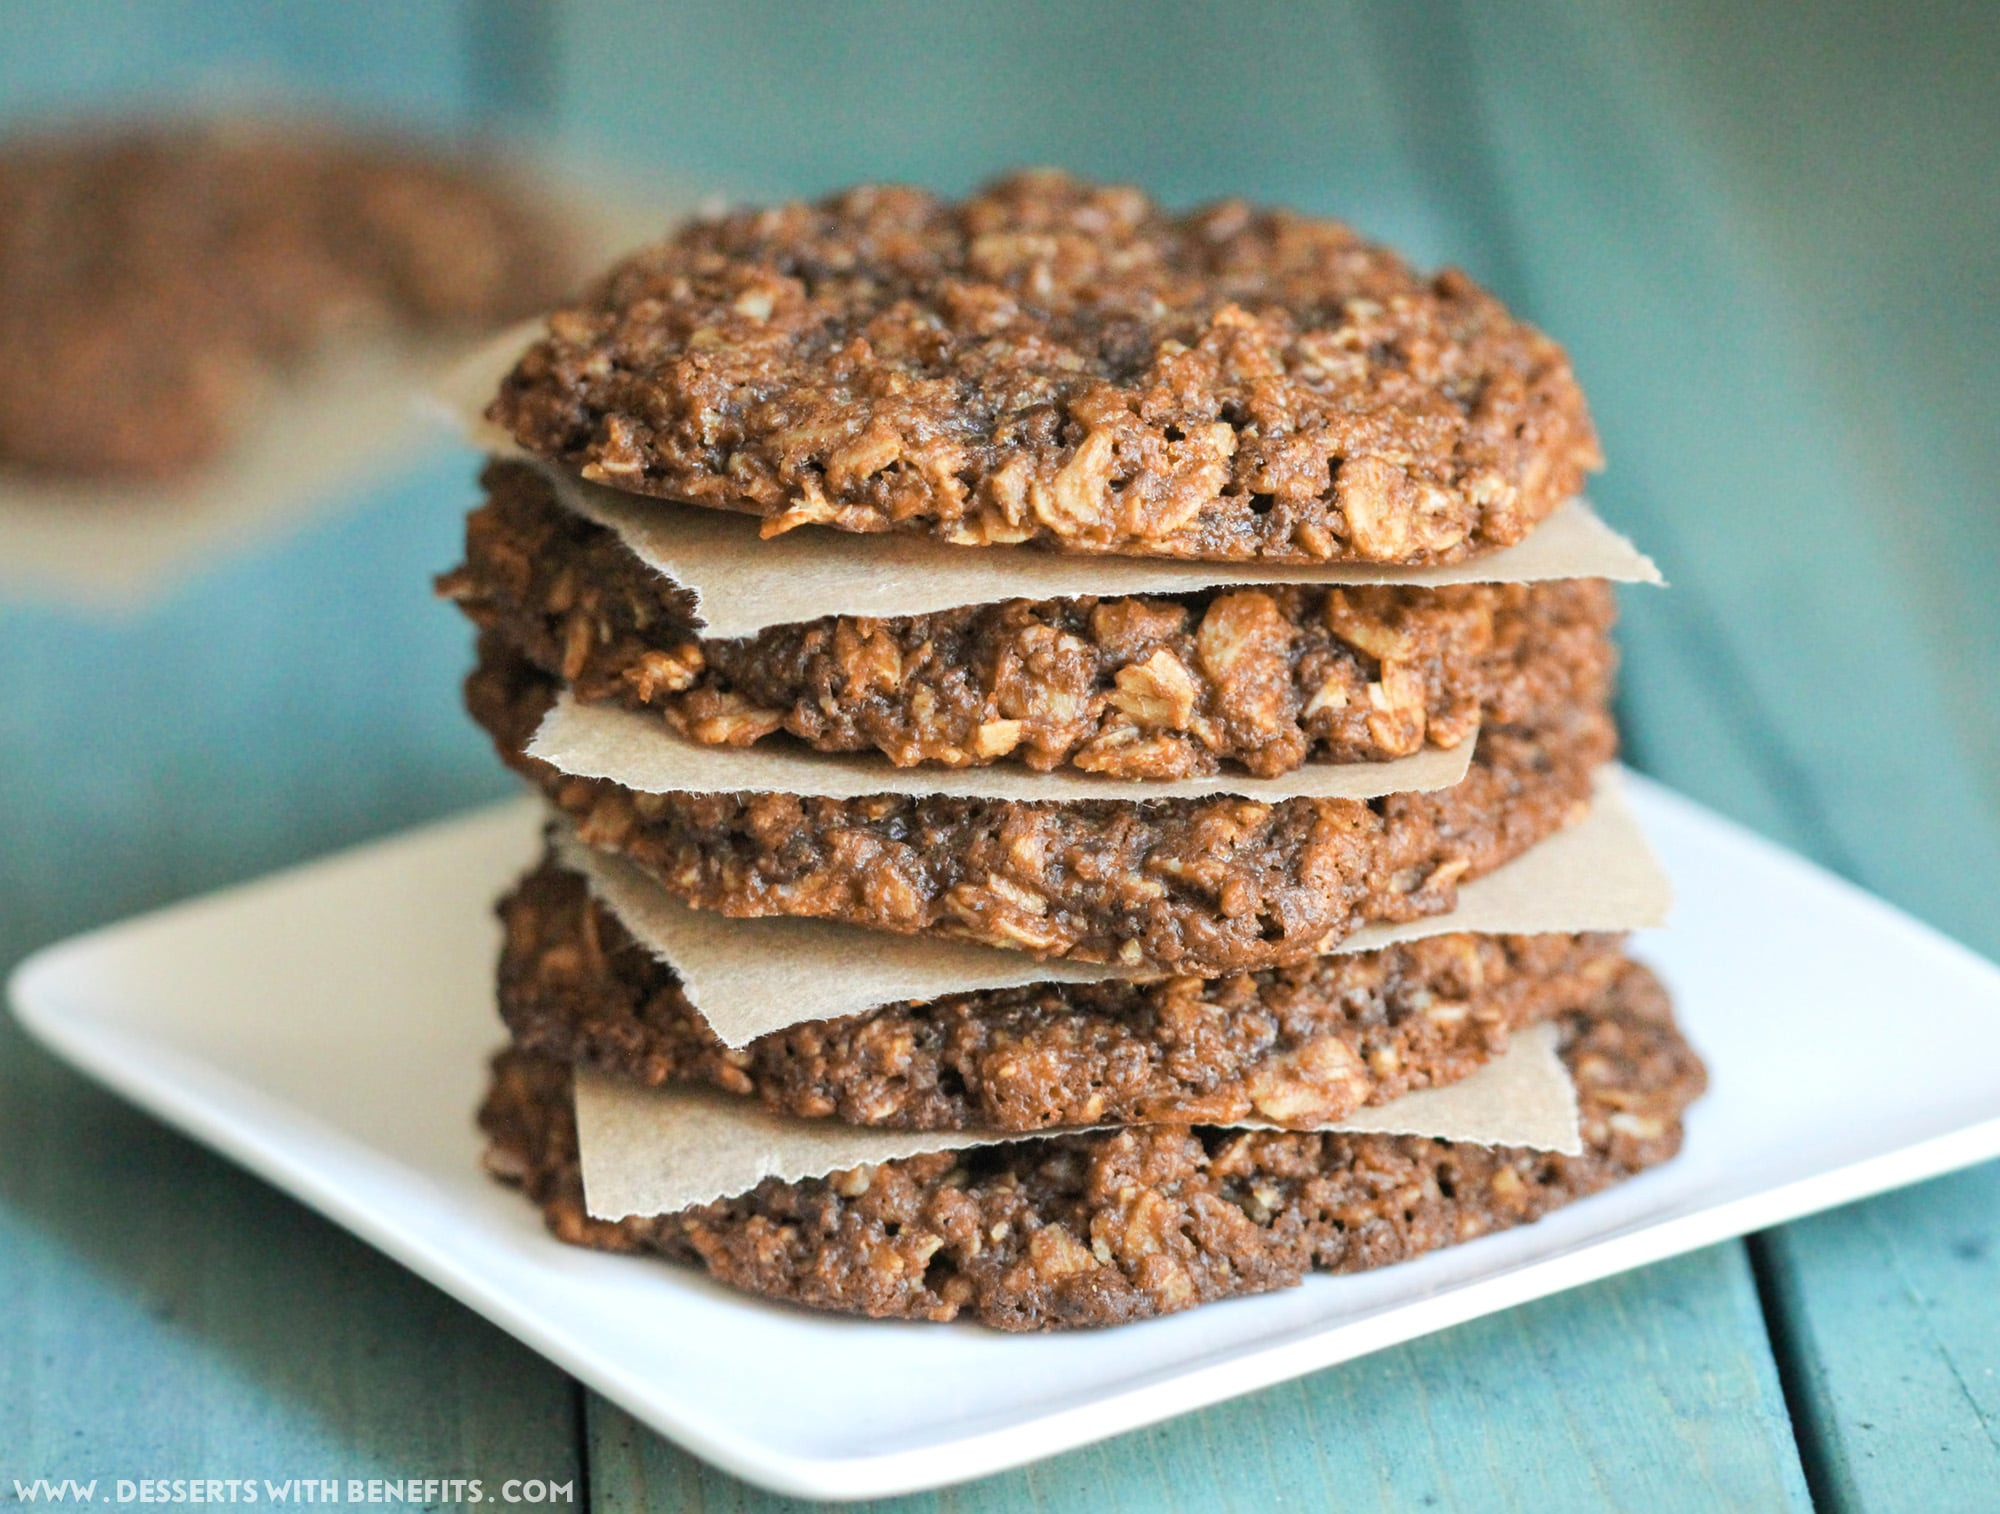 Healthy Chewy Oatmeal Cookies  Healthy Chewy Peanut Butter Oatmeal Cookies recipe gluten